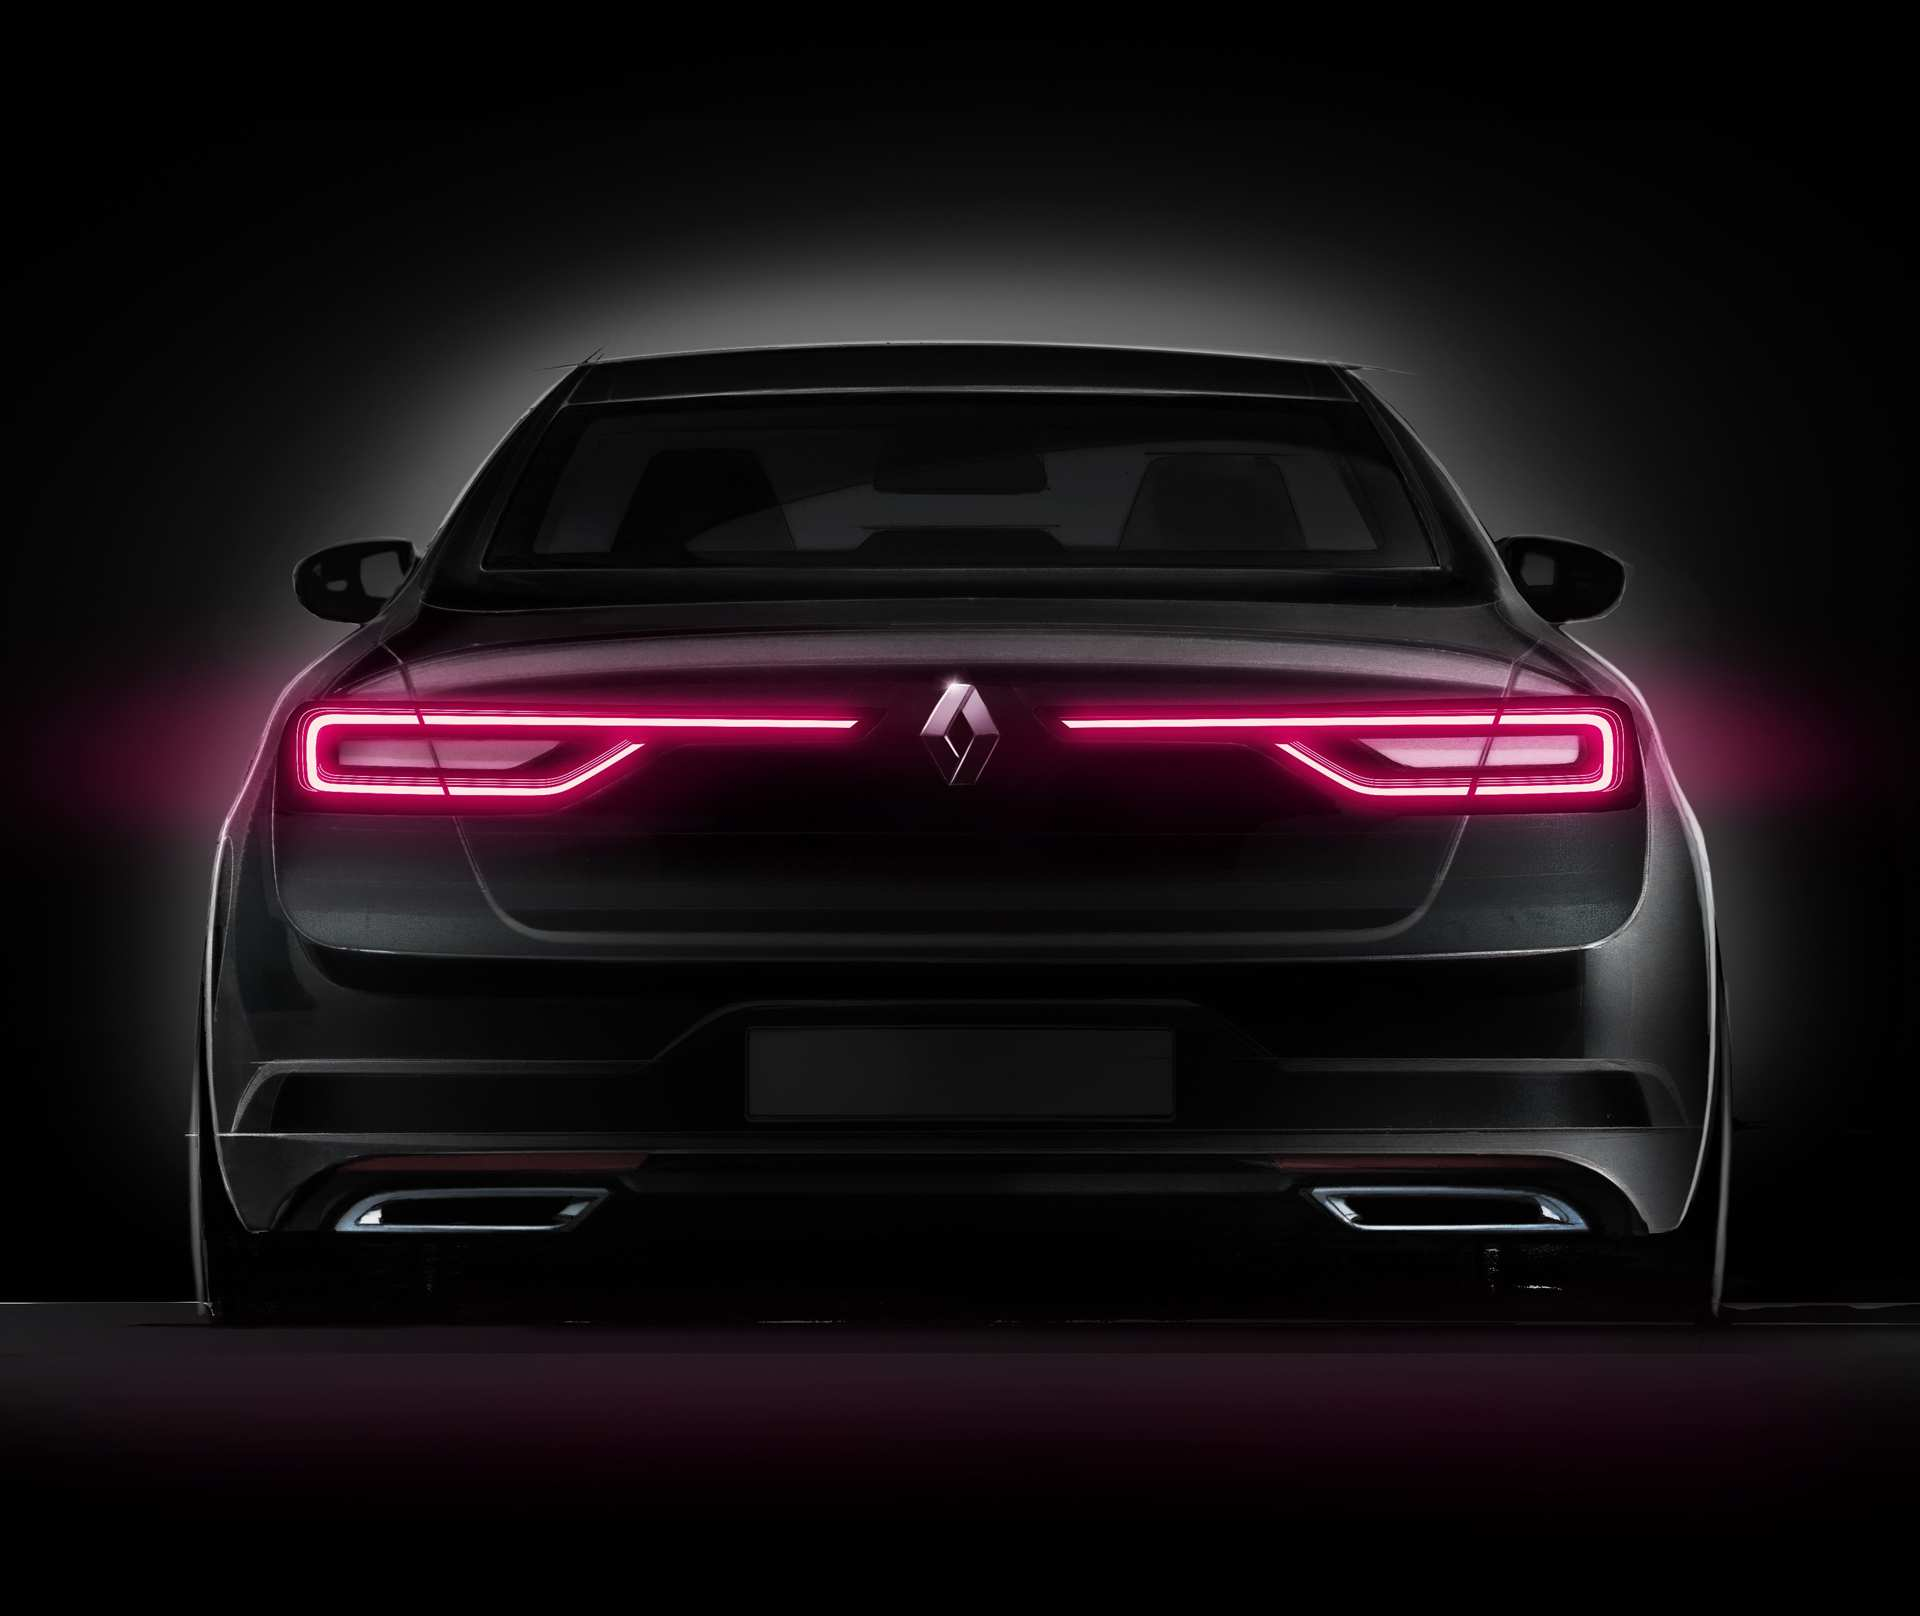 49 New Renault Talisman 2020 New Concept for Renault Talisman 2020